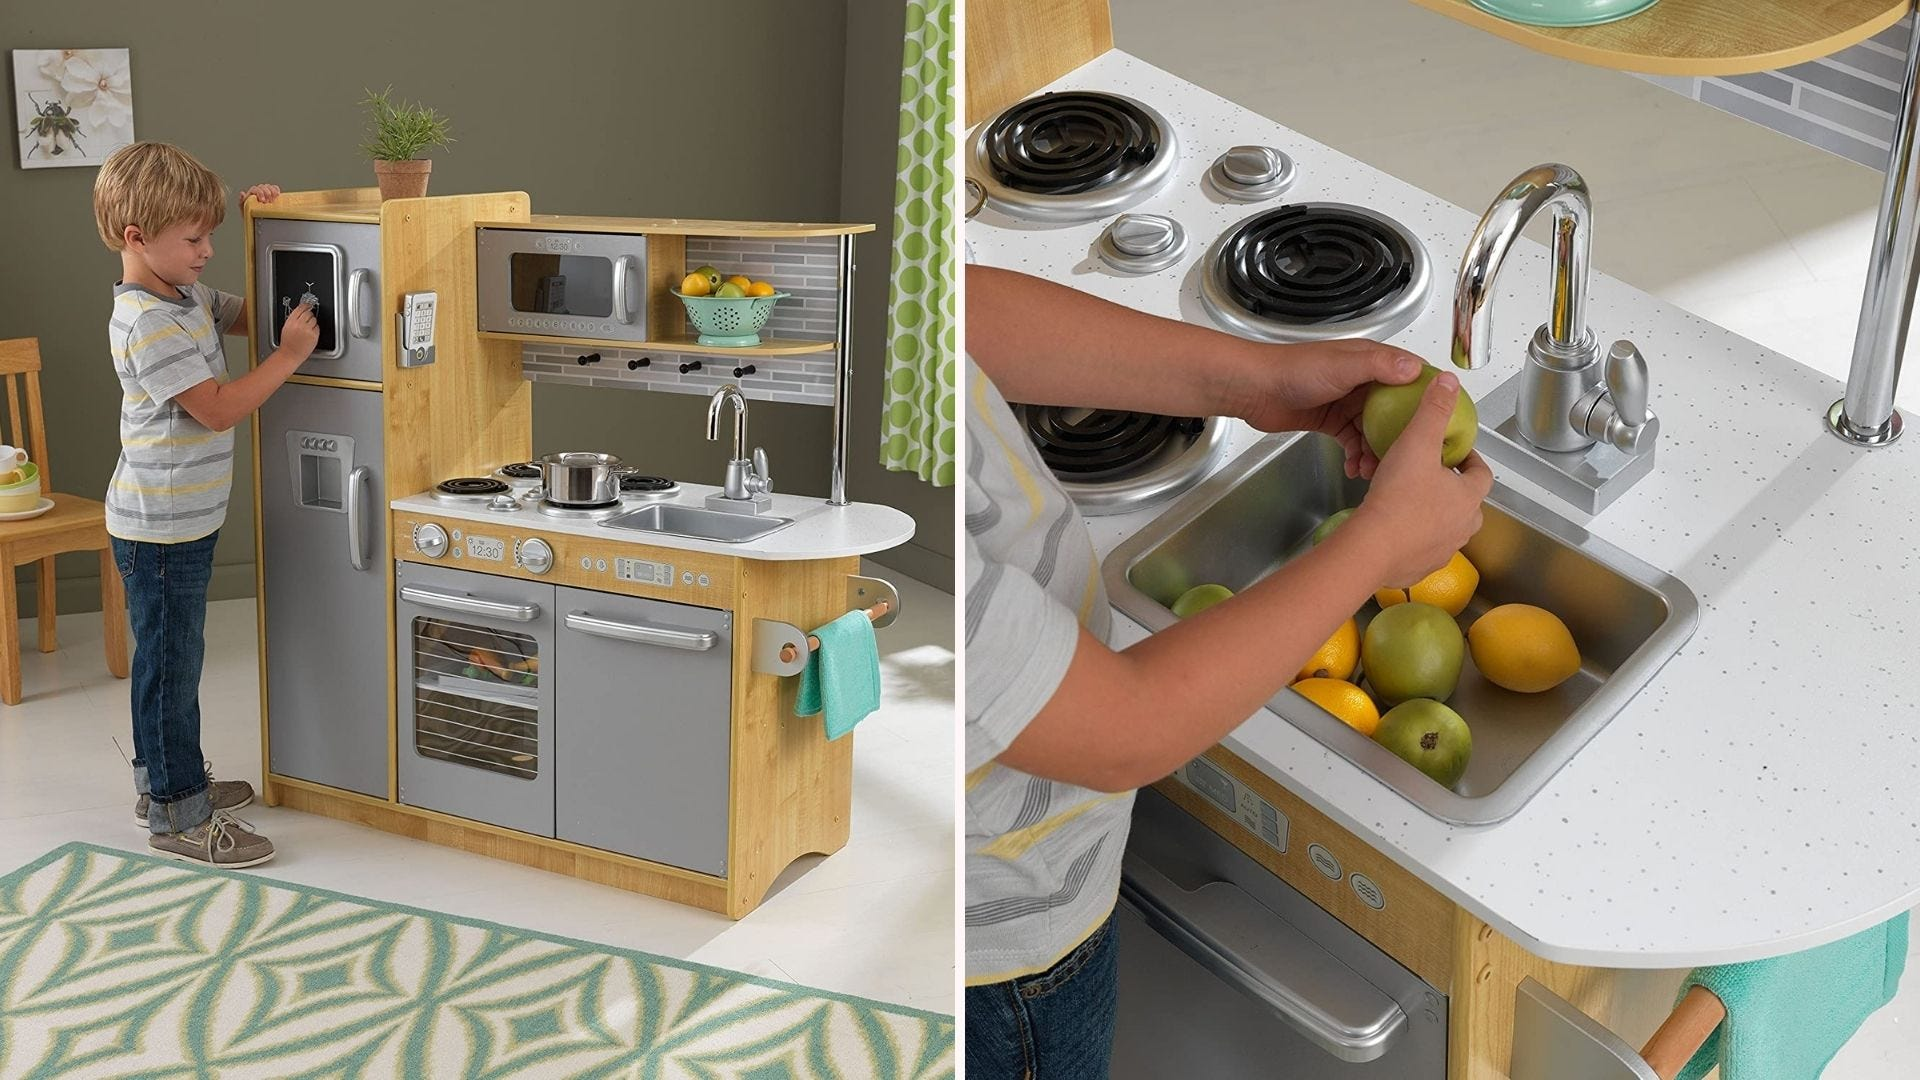 Two images of a KidKraft kitchen set: the left image is of a young boy playing at the kitchen and the right image is a closeup of the child pretending to wash fruits in the play kitchen sink.